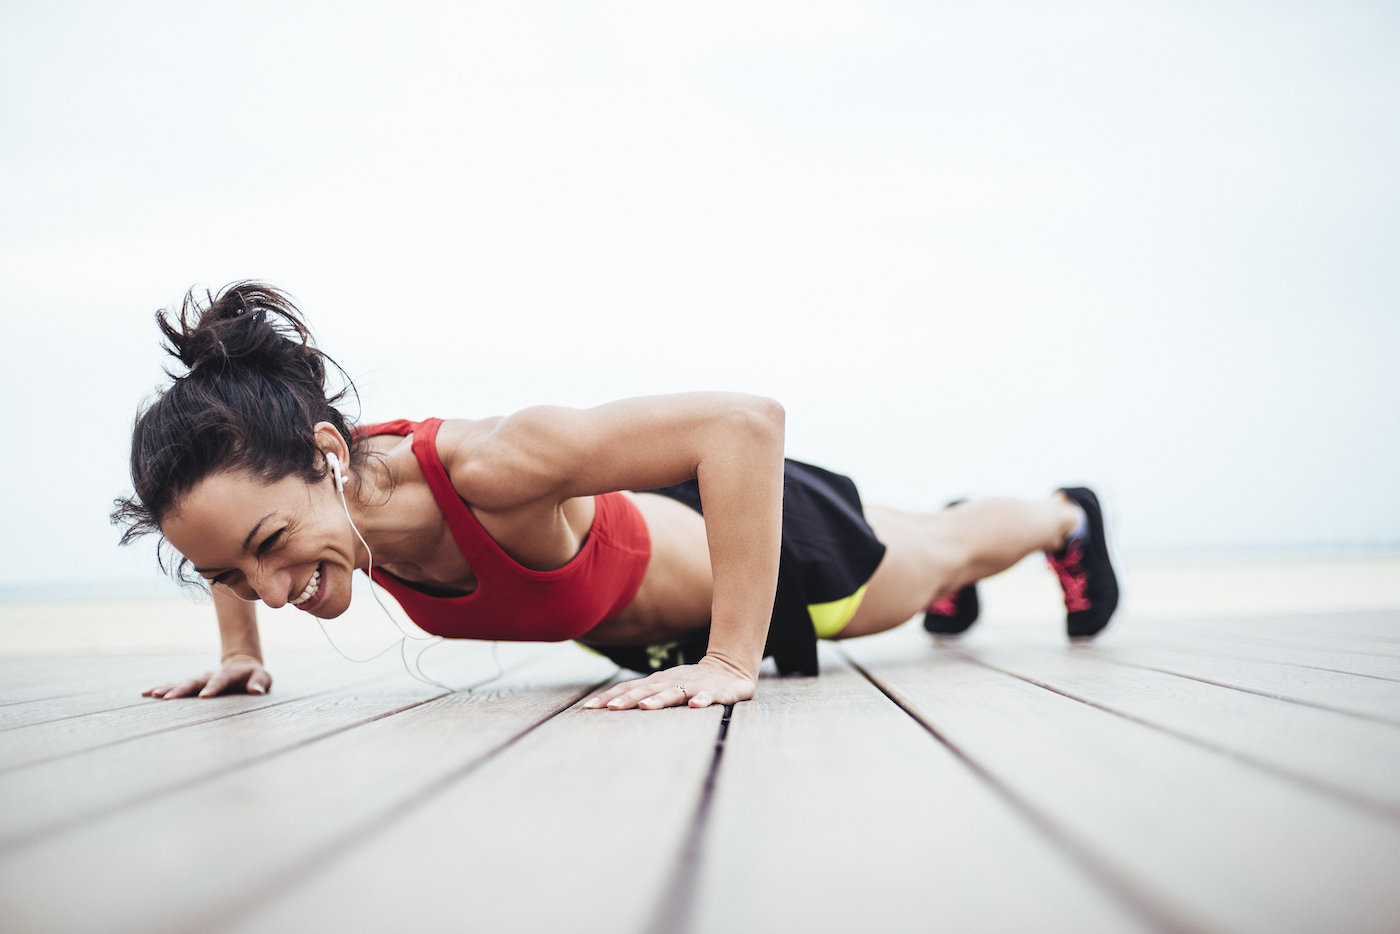 Thumbnail for How to triple your push-up count in a single strength-training session